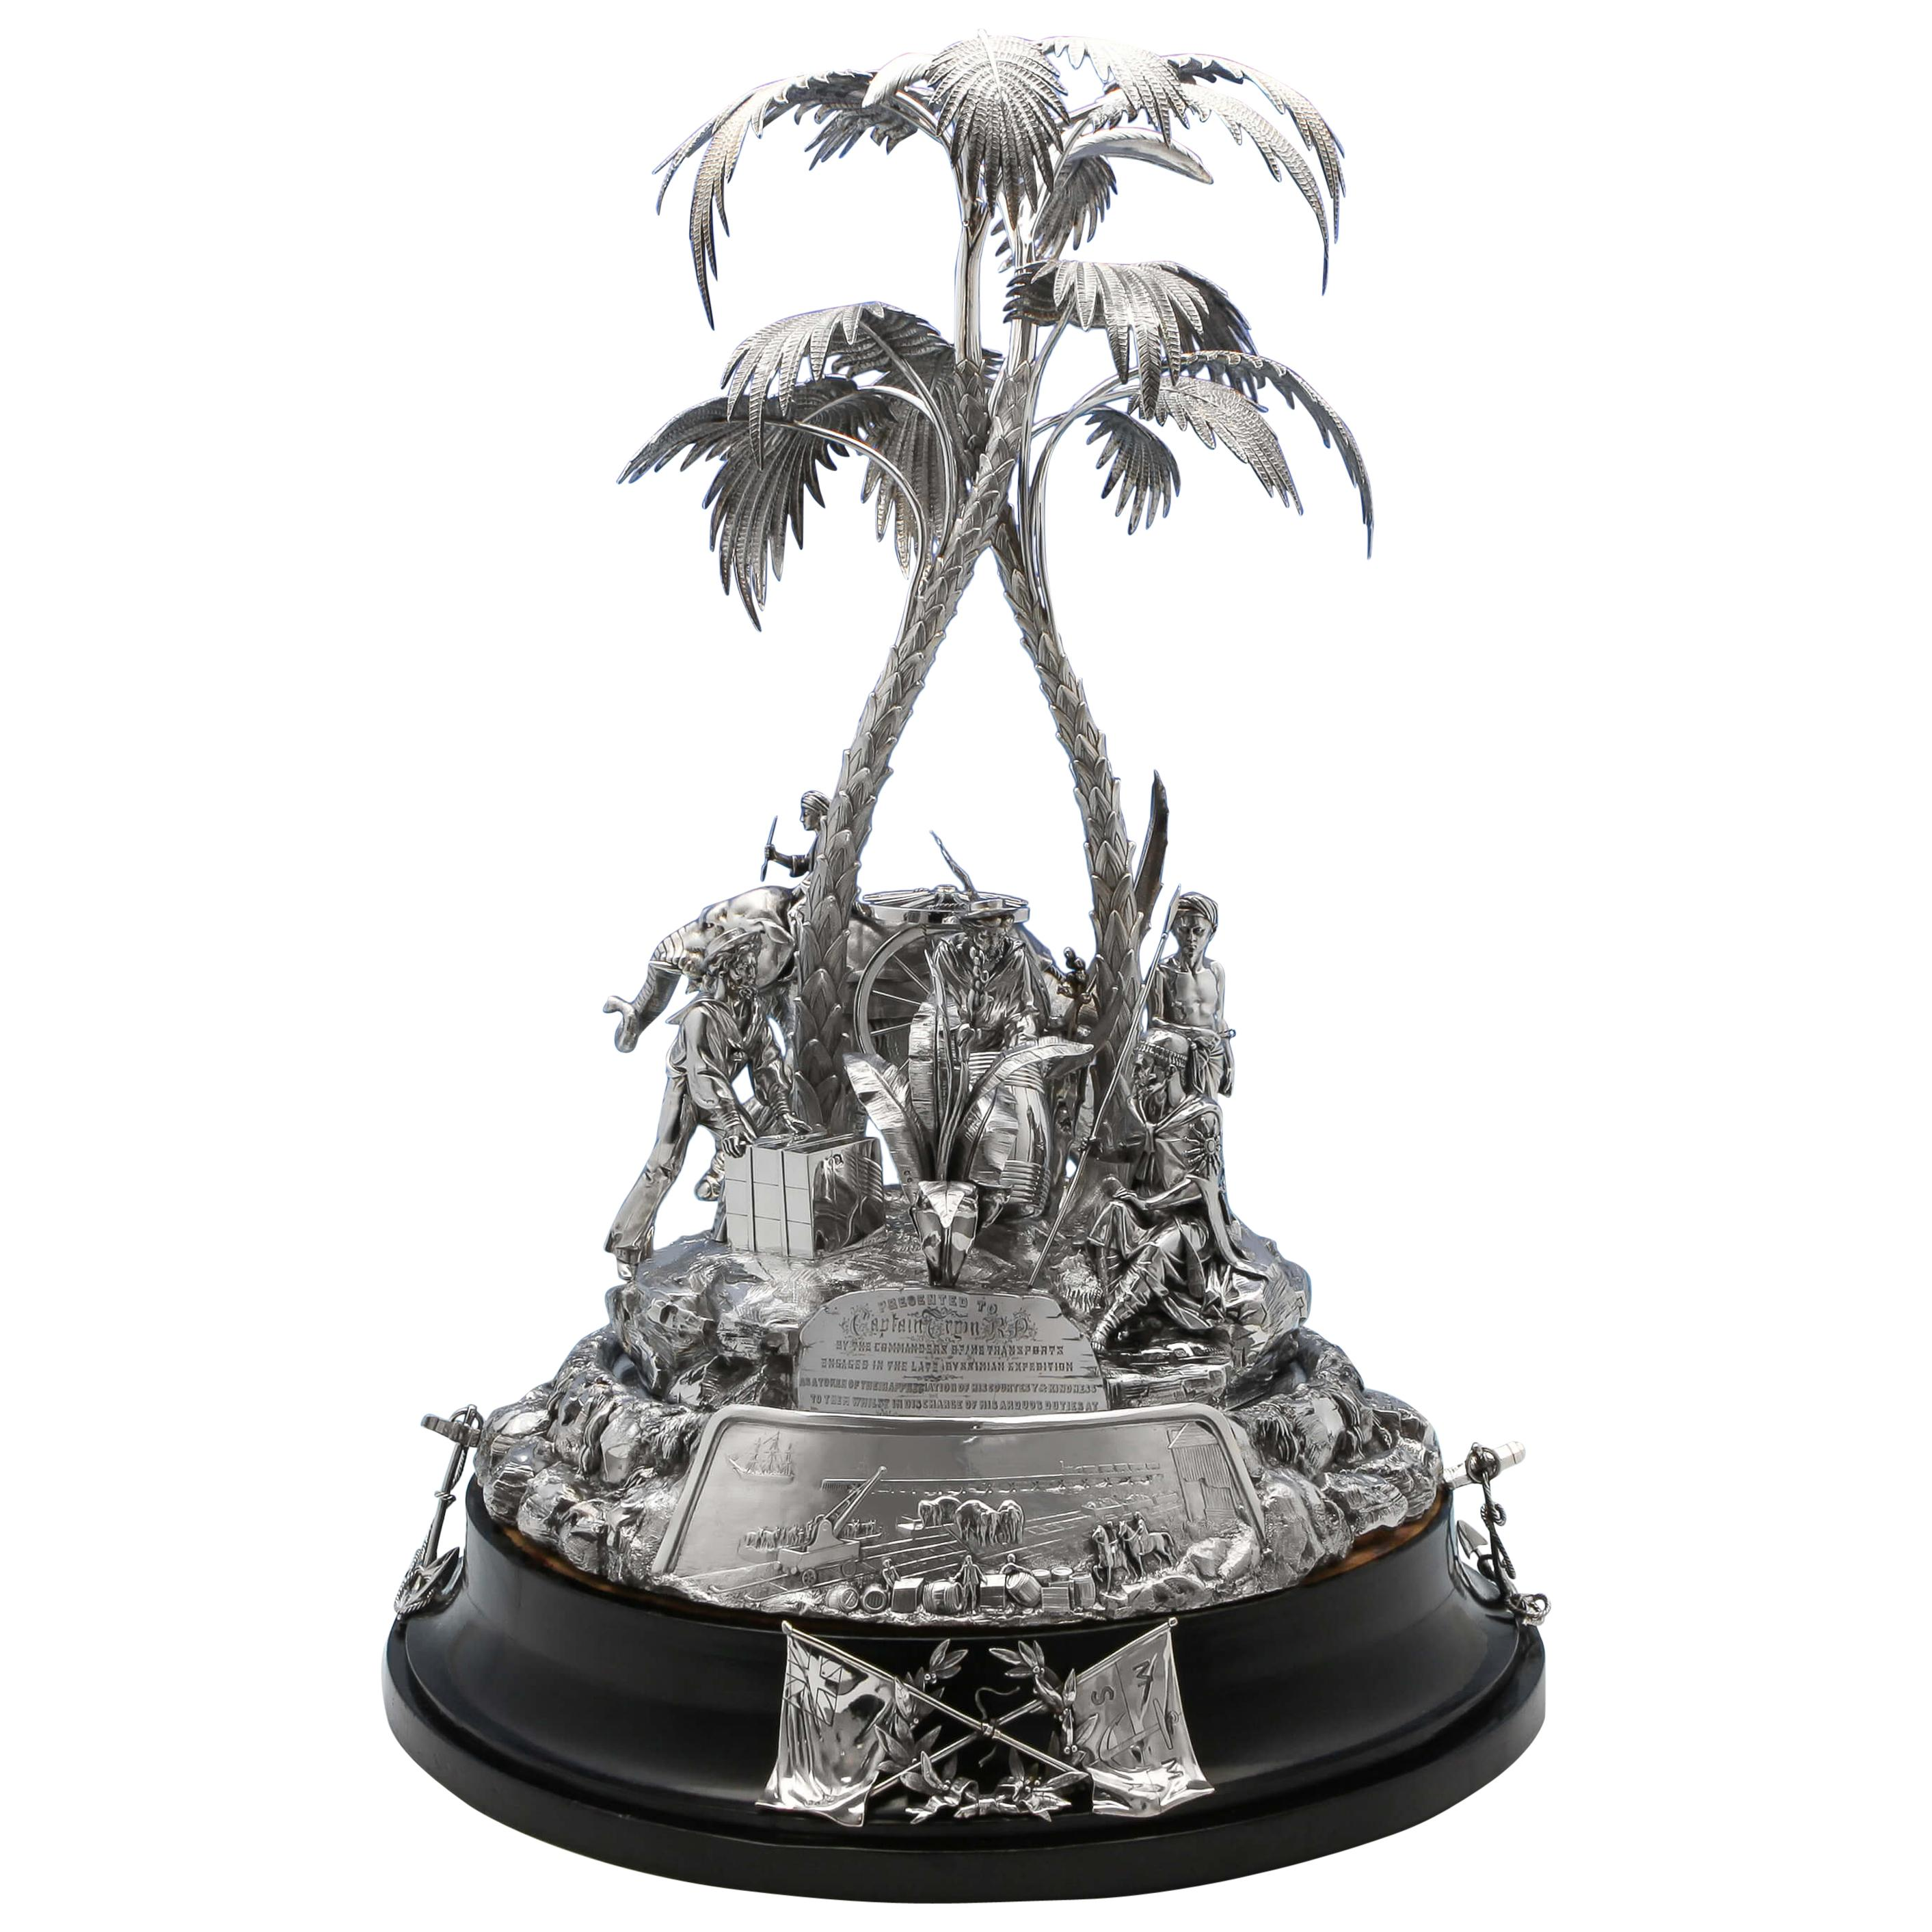 Admiral Tryons Antique Sterling Silver Centrepiece made by Elkington & Co.